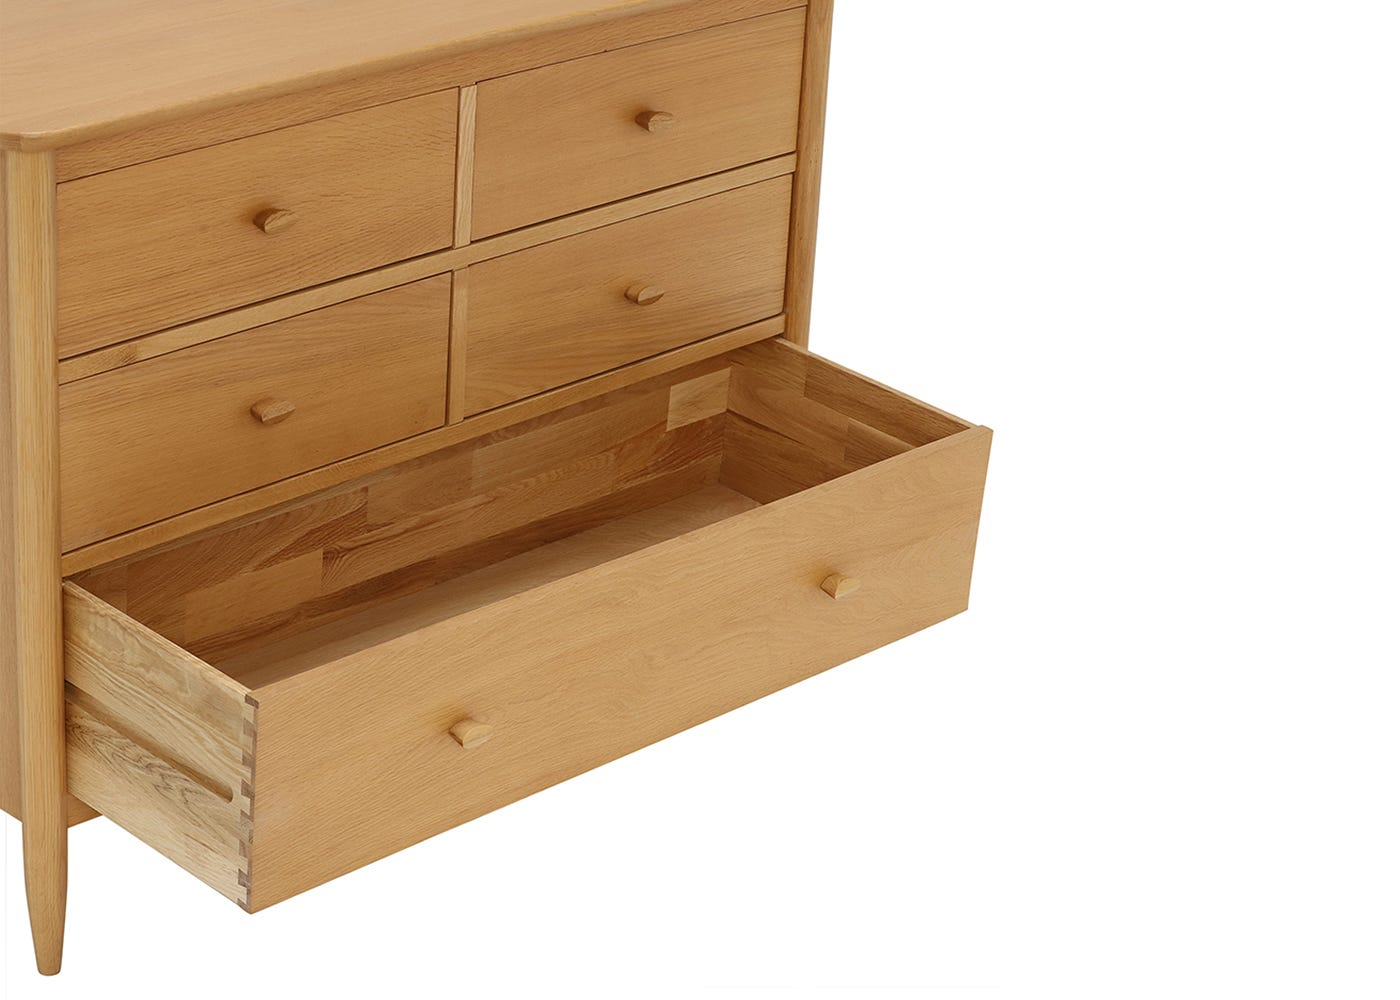 Teramo 5 Drawer Wide Chest - Drawer Open